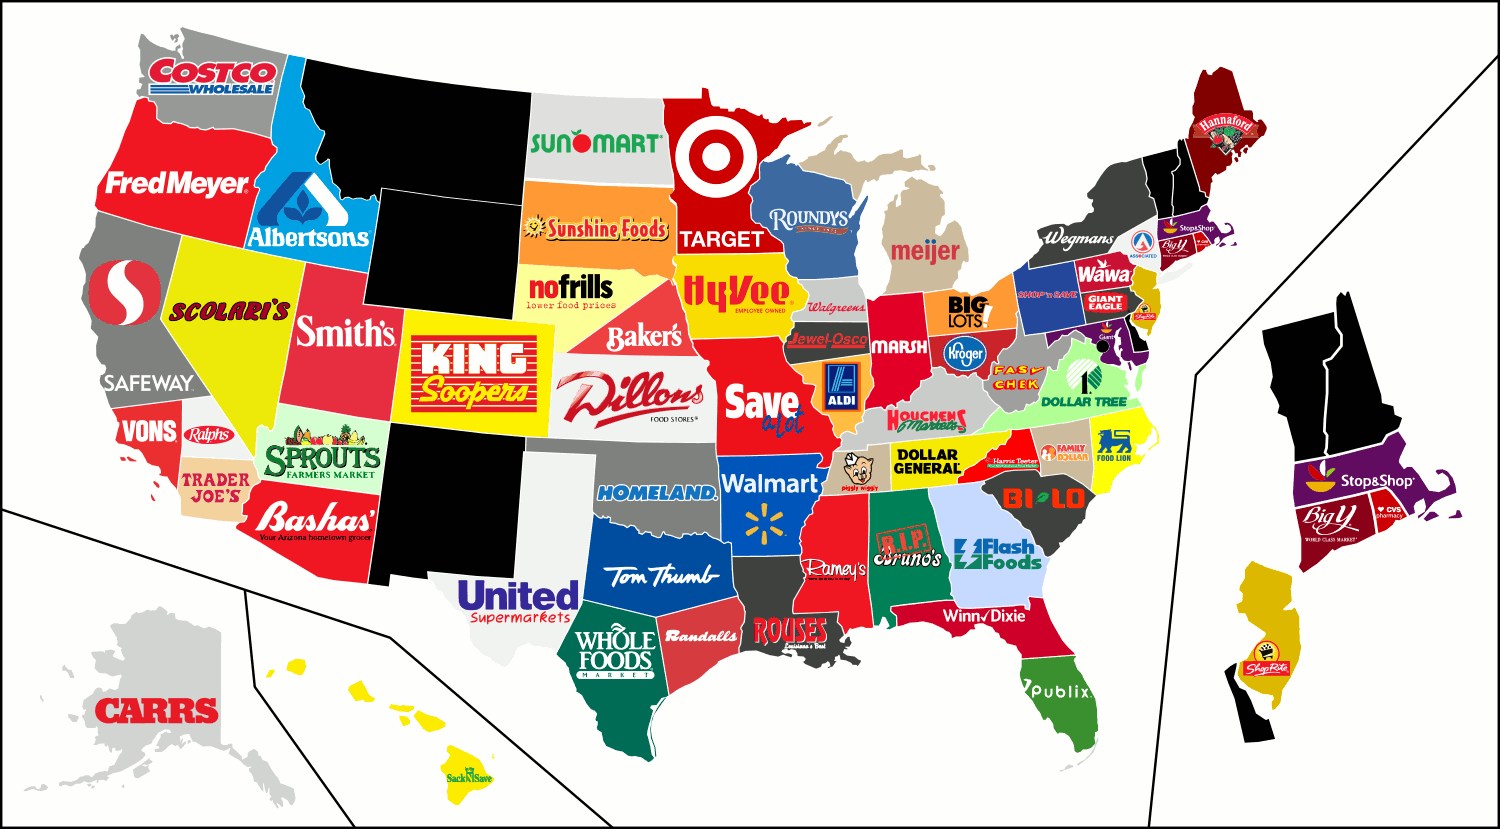 United States Supermarket Map States Where The Store Was Founded Or Have A Headquarters Claim